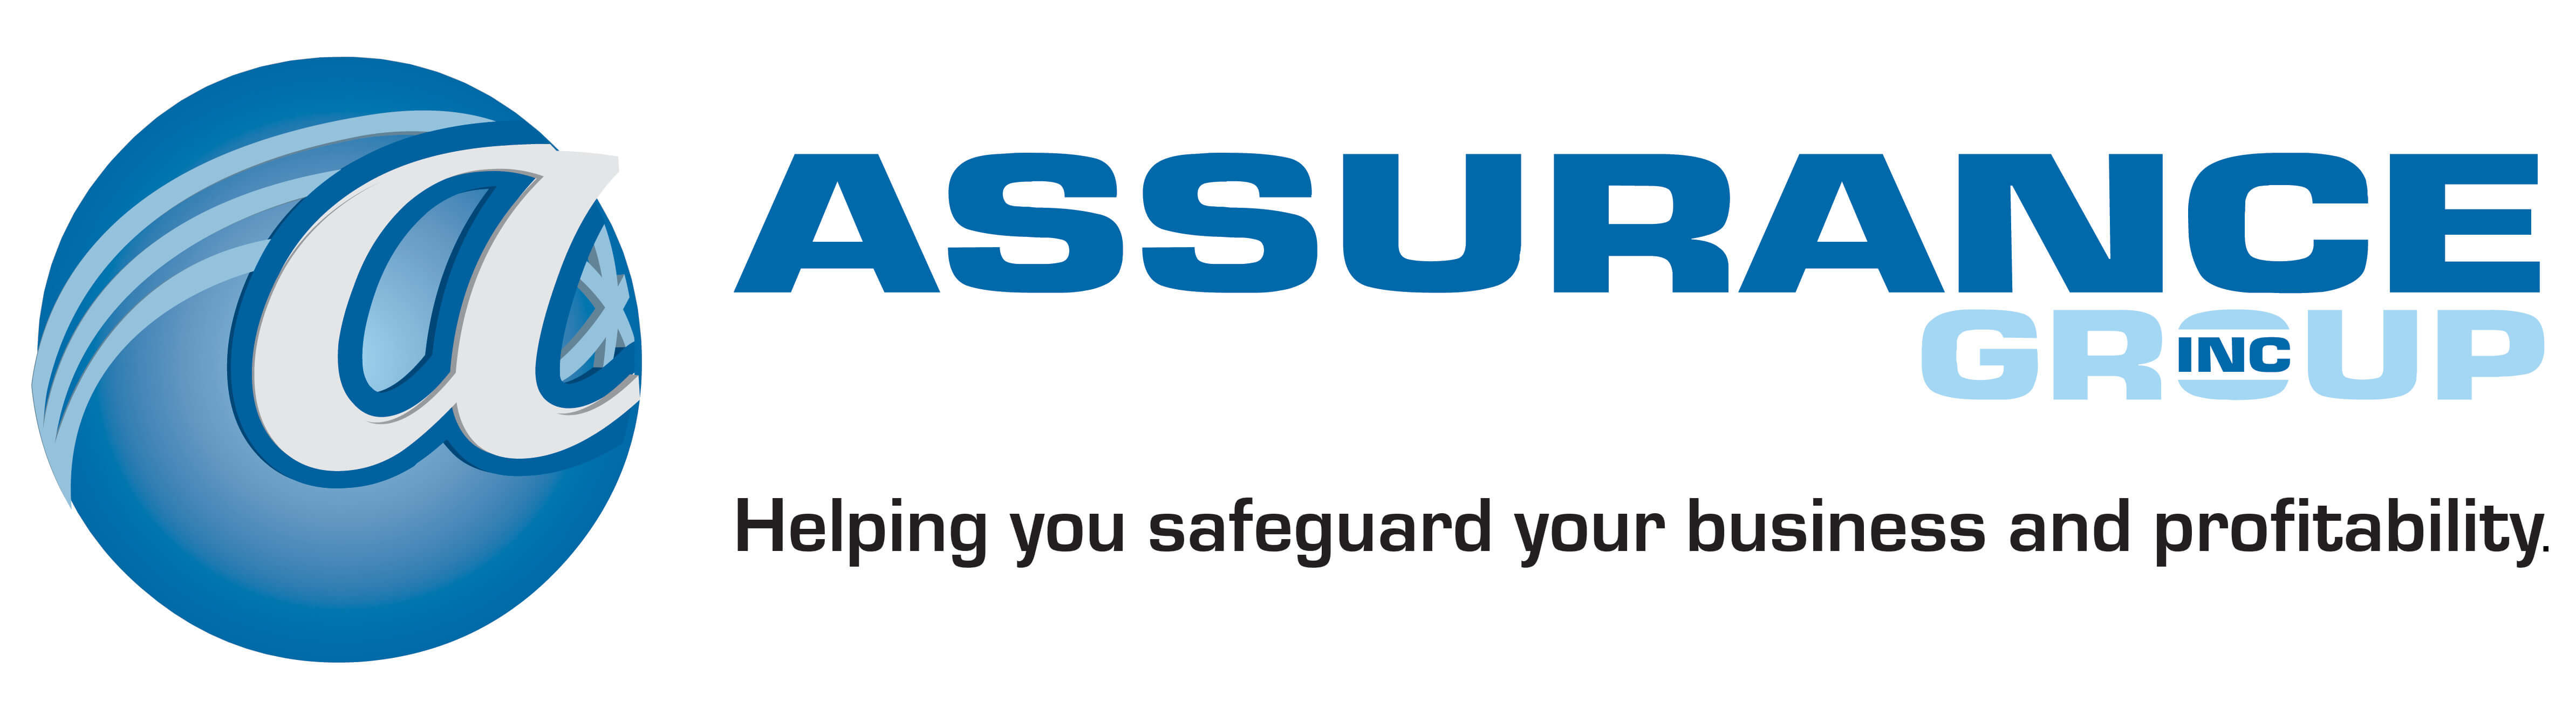 Cyber Security & IT Support Services in Dublin OH | Assurance Group, Inc.